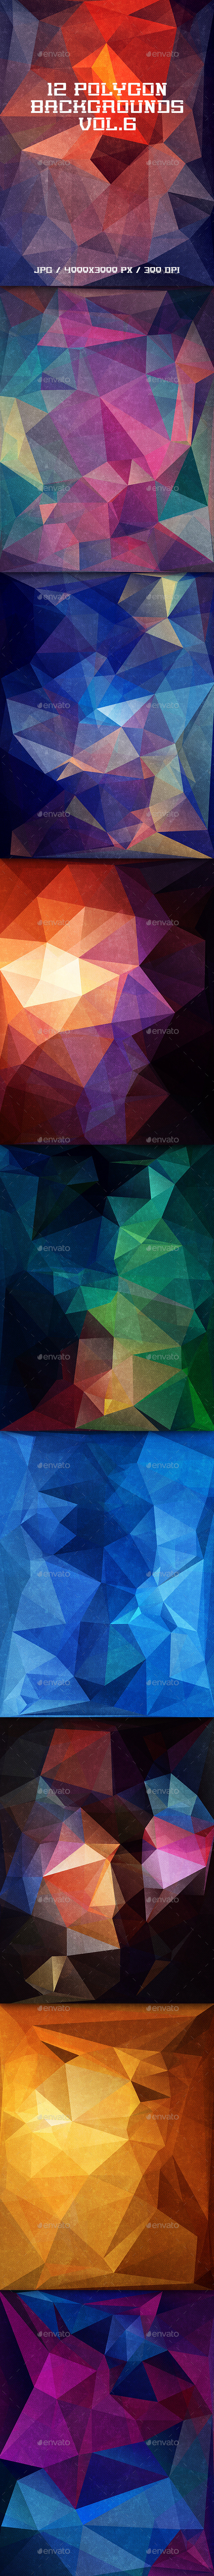 GraphicRiver Polygon Backgrounds Vol.6 11507788